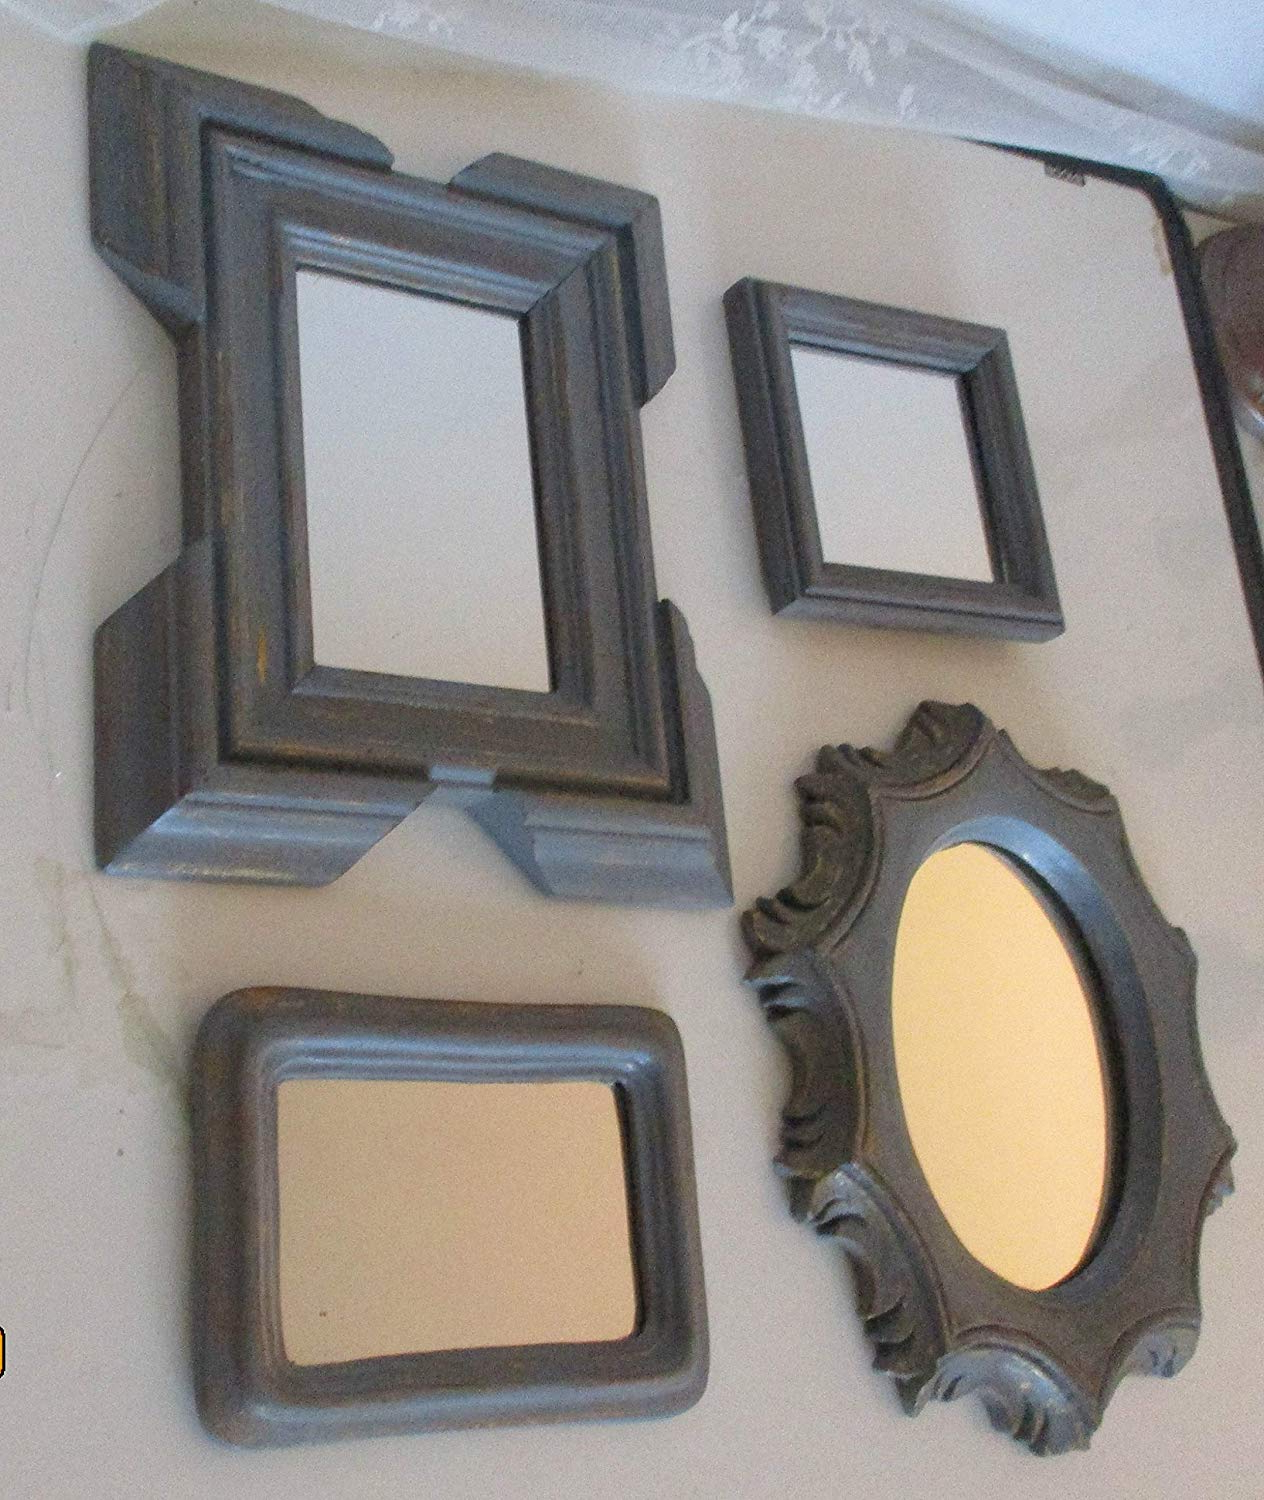 Well Liked Decorative Wall Mirror Sets With Amazon: Wall Mirrors, Grey Mirrors, Gray Mirrors, Decorative (Gallery 18 of 20)